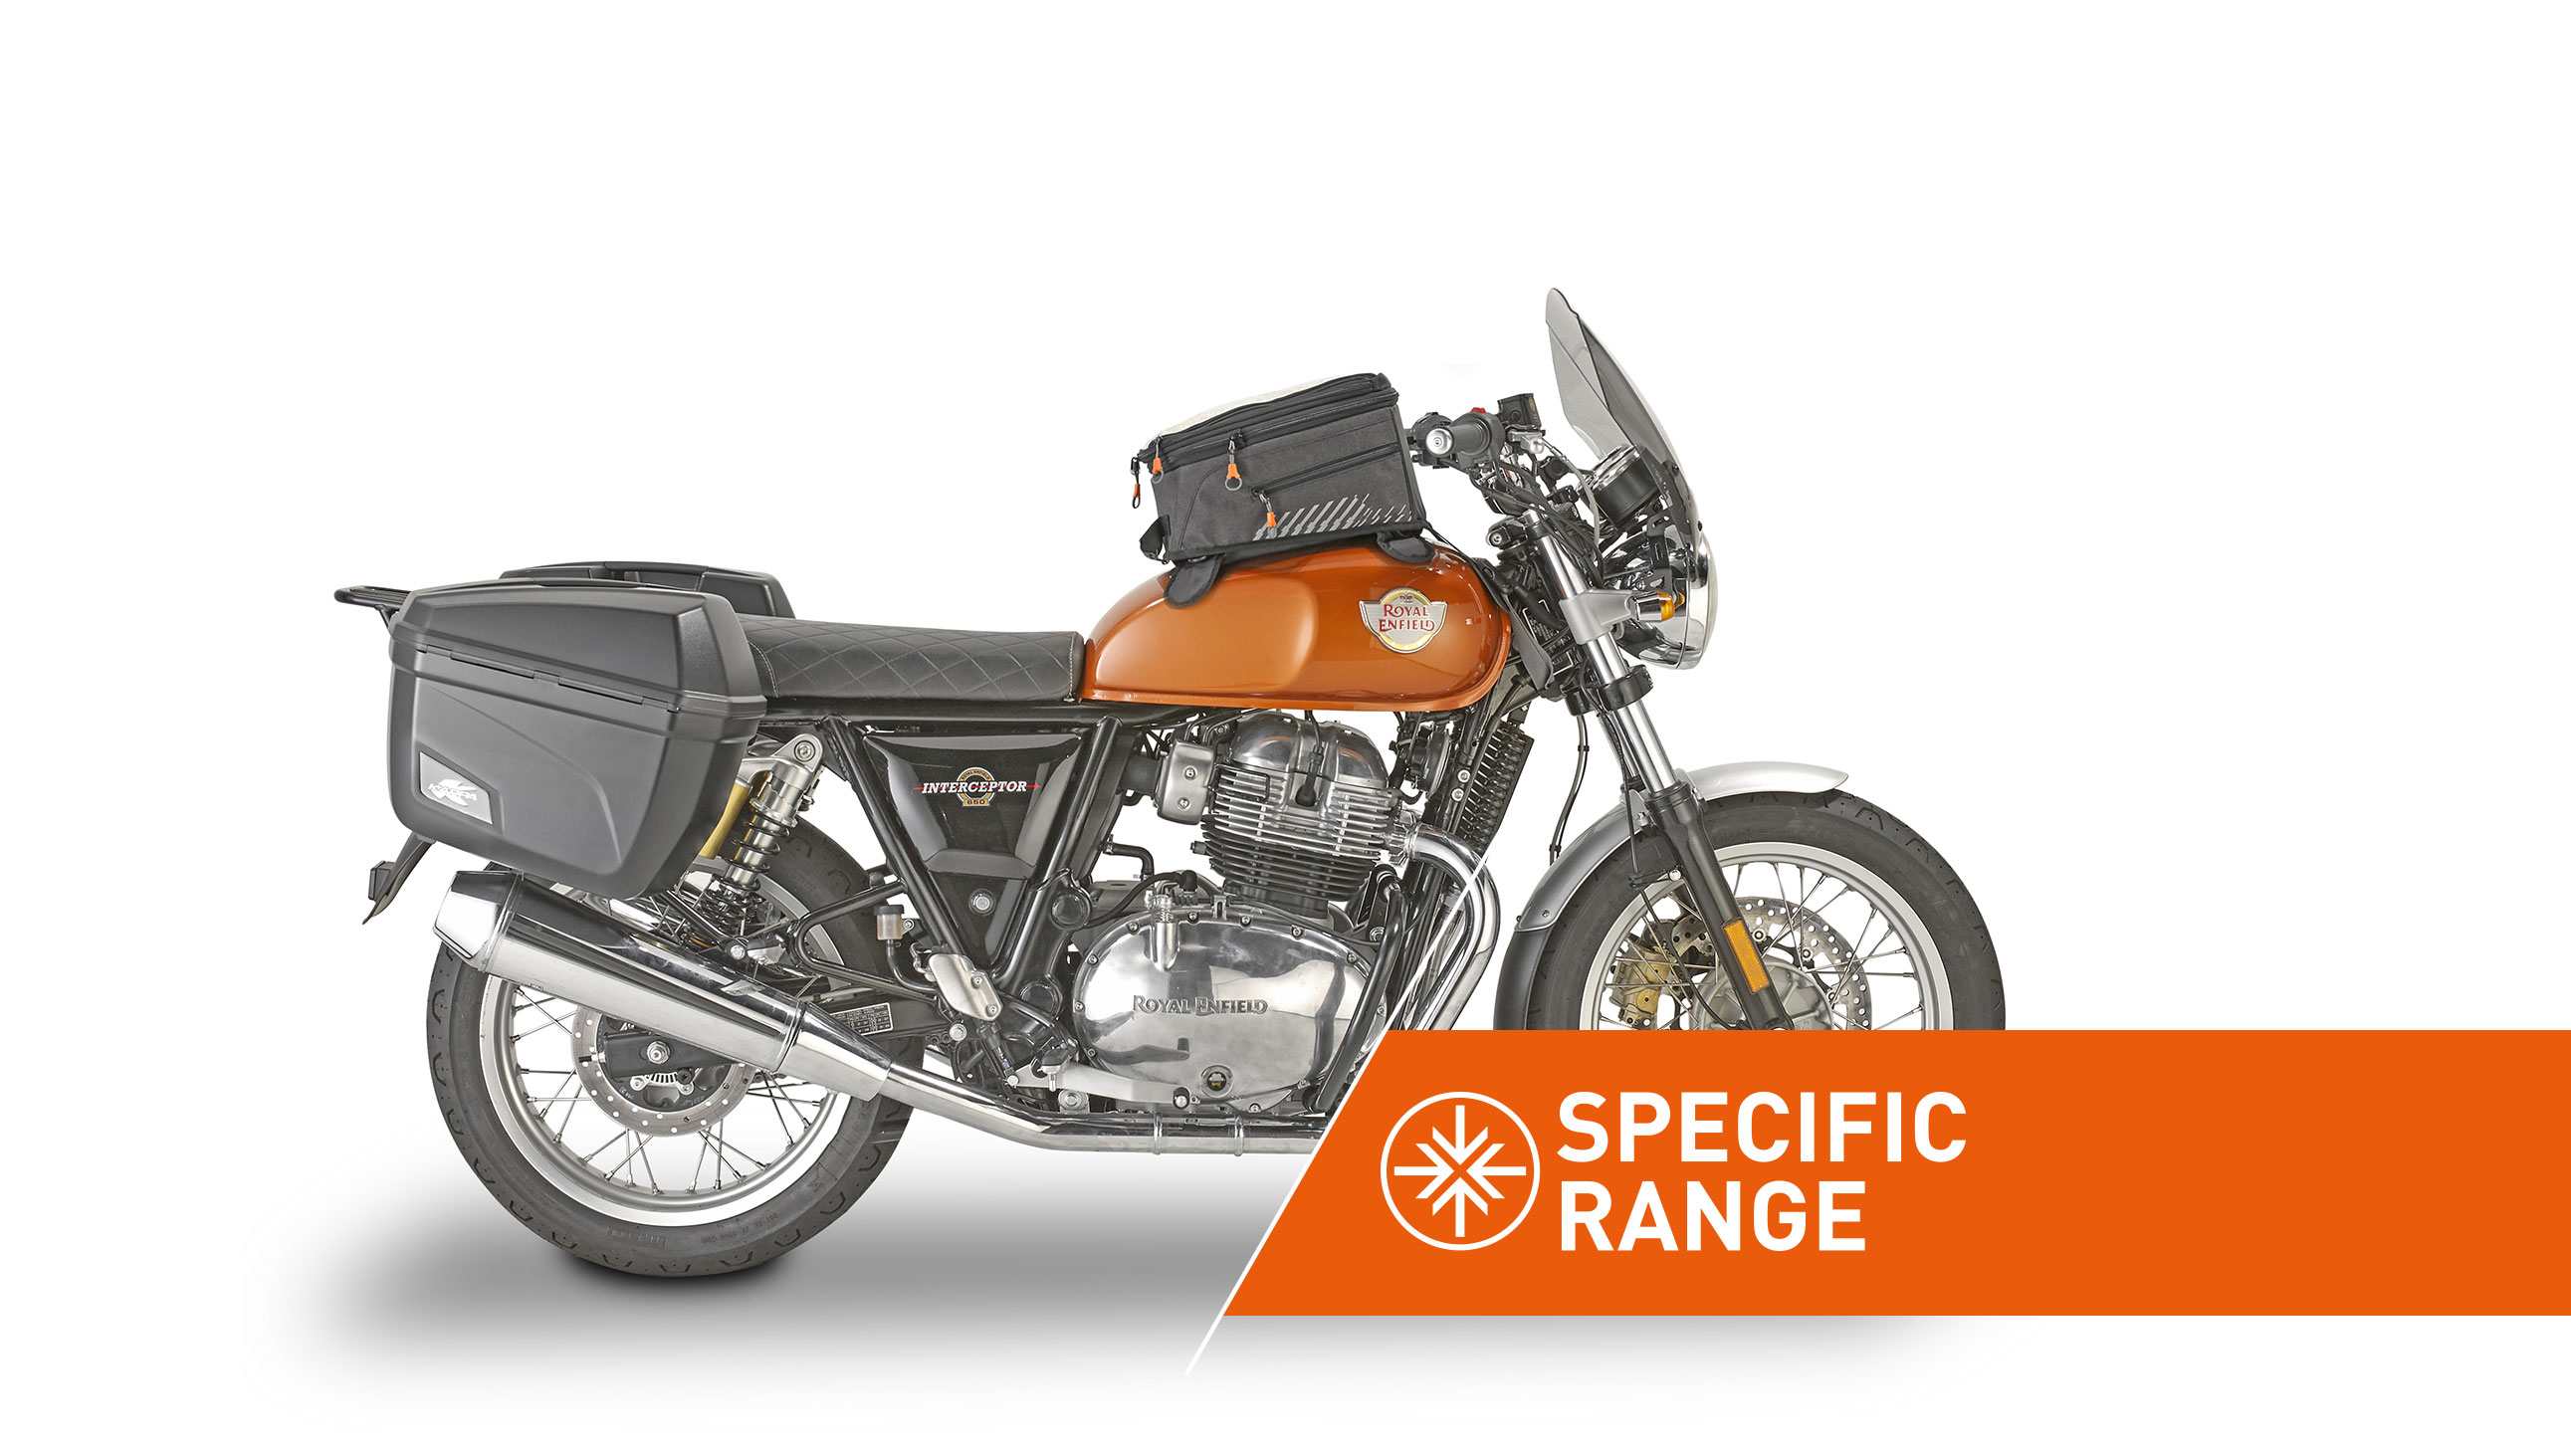 Linea di accessori specifica per ROYAL ENFIELD INTERCEPTOR 650 by KAPPA MOTO